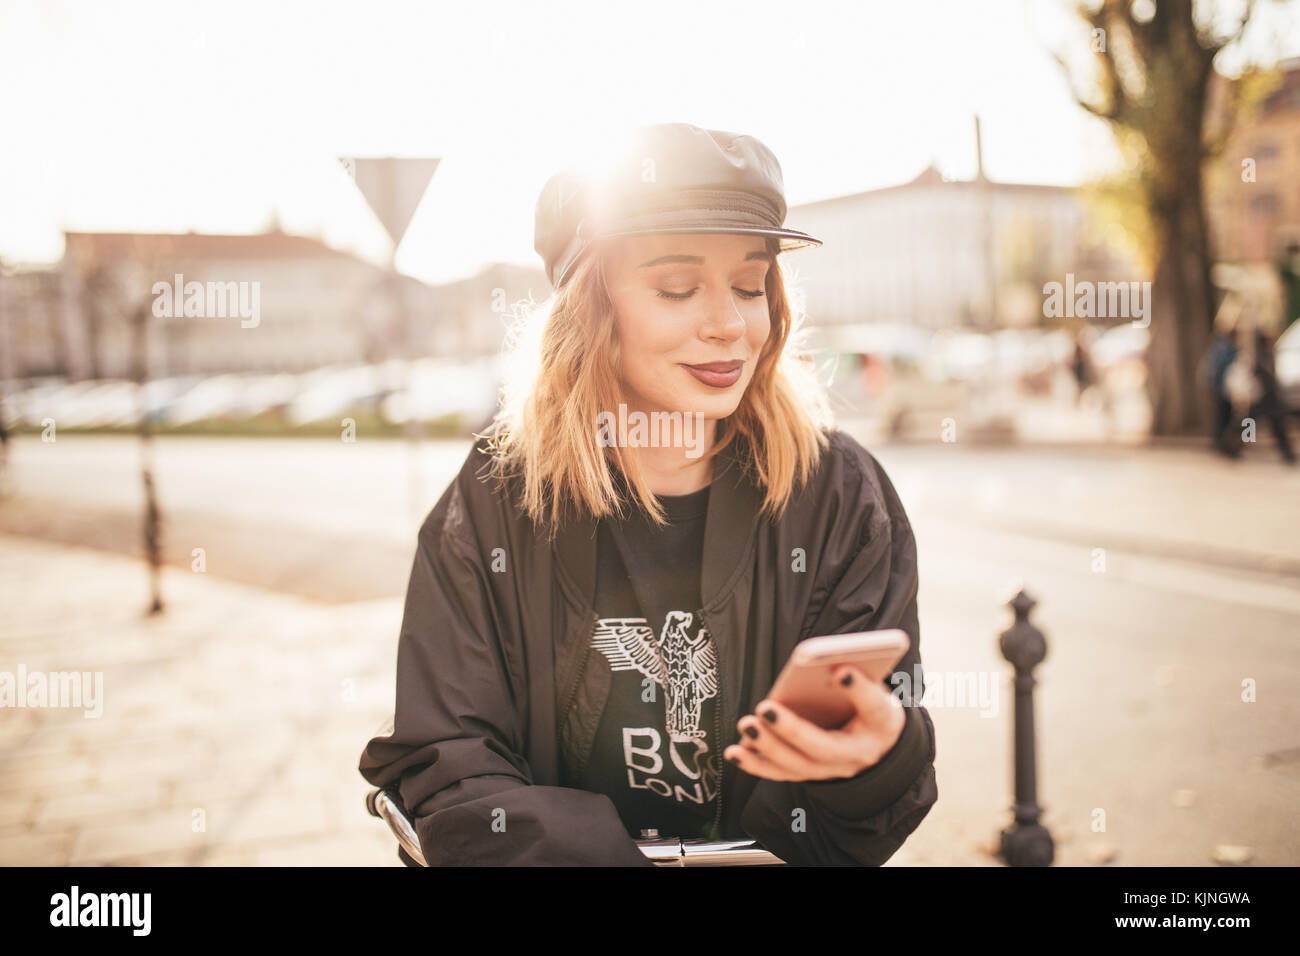 Beautiful girl texting on her cell phone on city streets - Stock Image